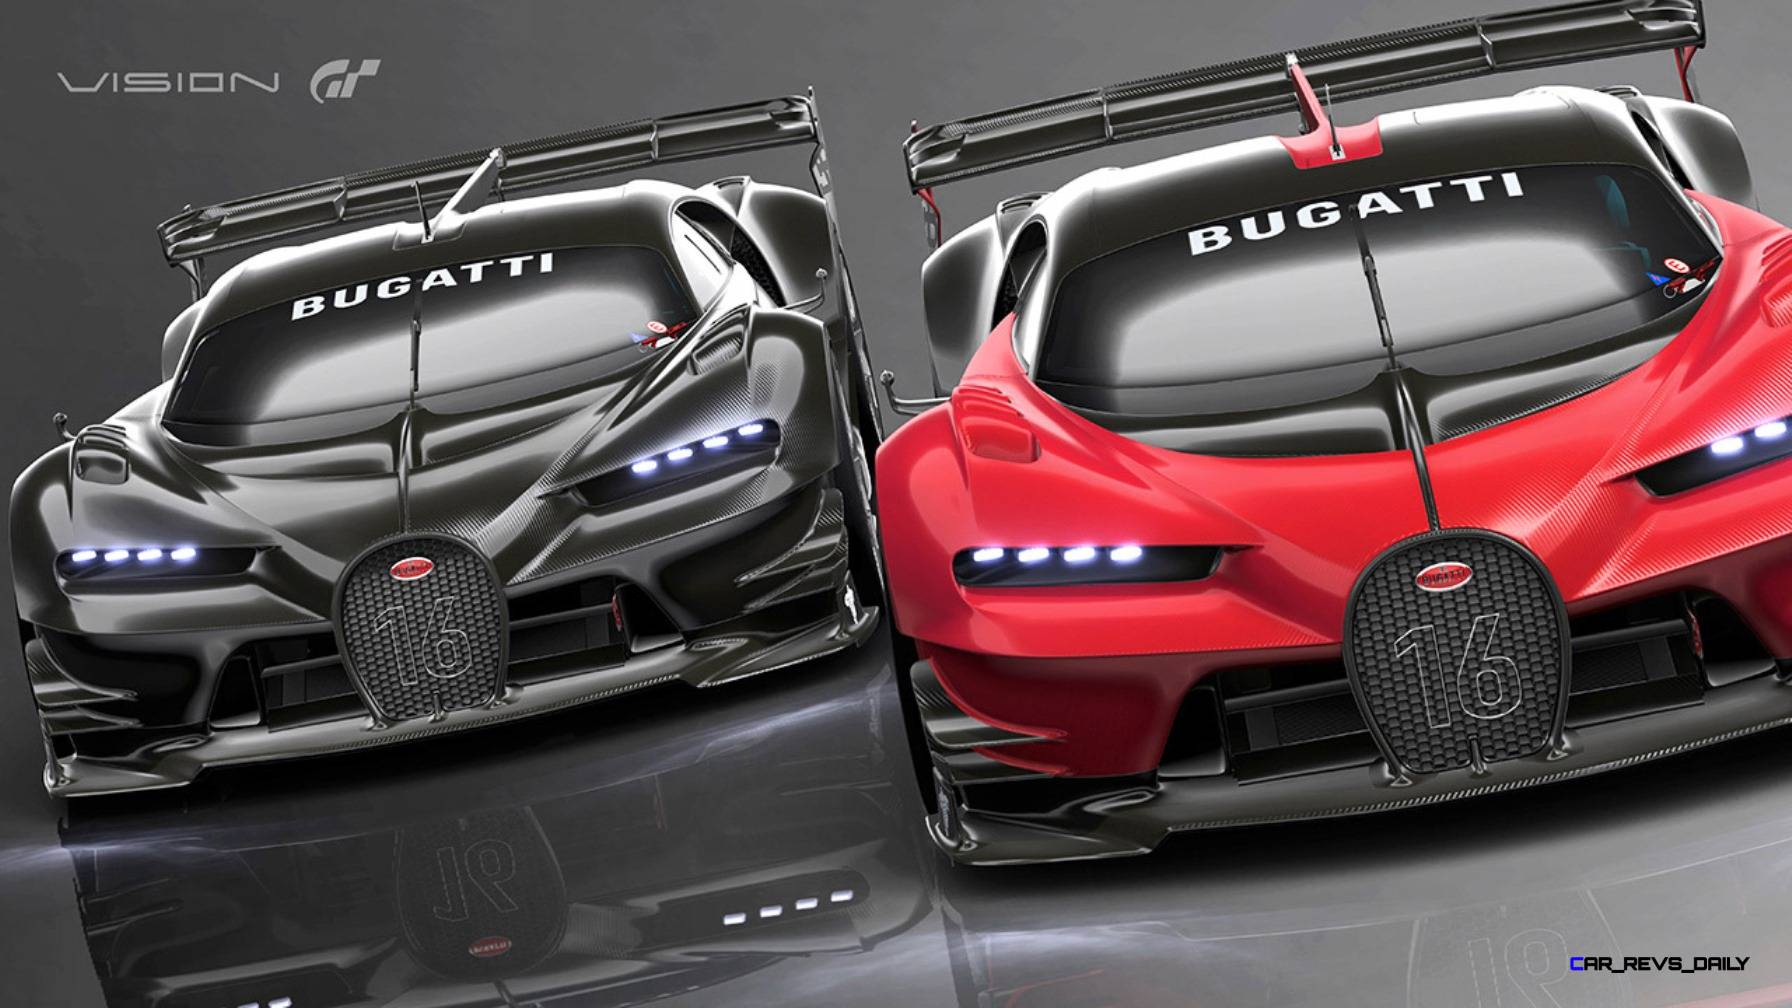 2015 bugatti vision gran turismo colors. Black Bedroom Furniture Sets. Home Design Ideas